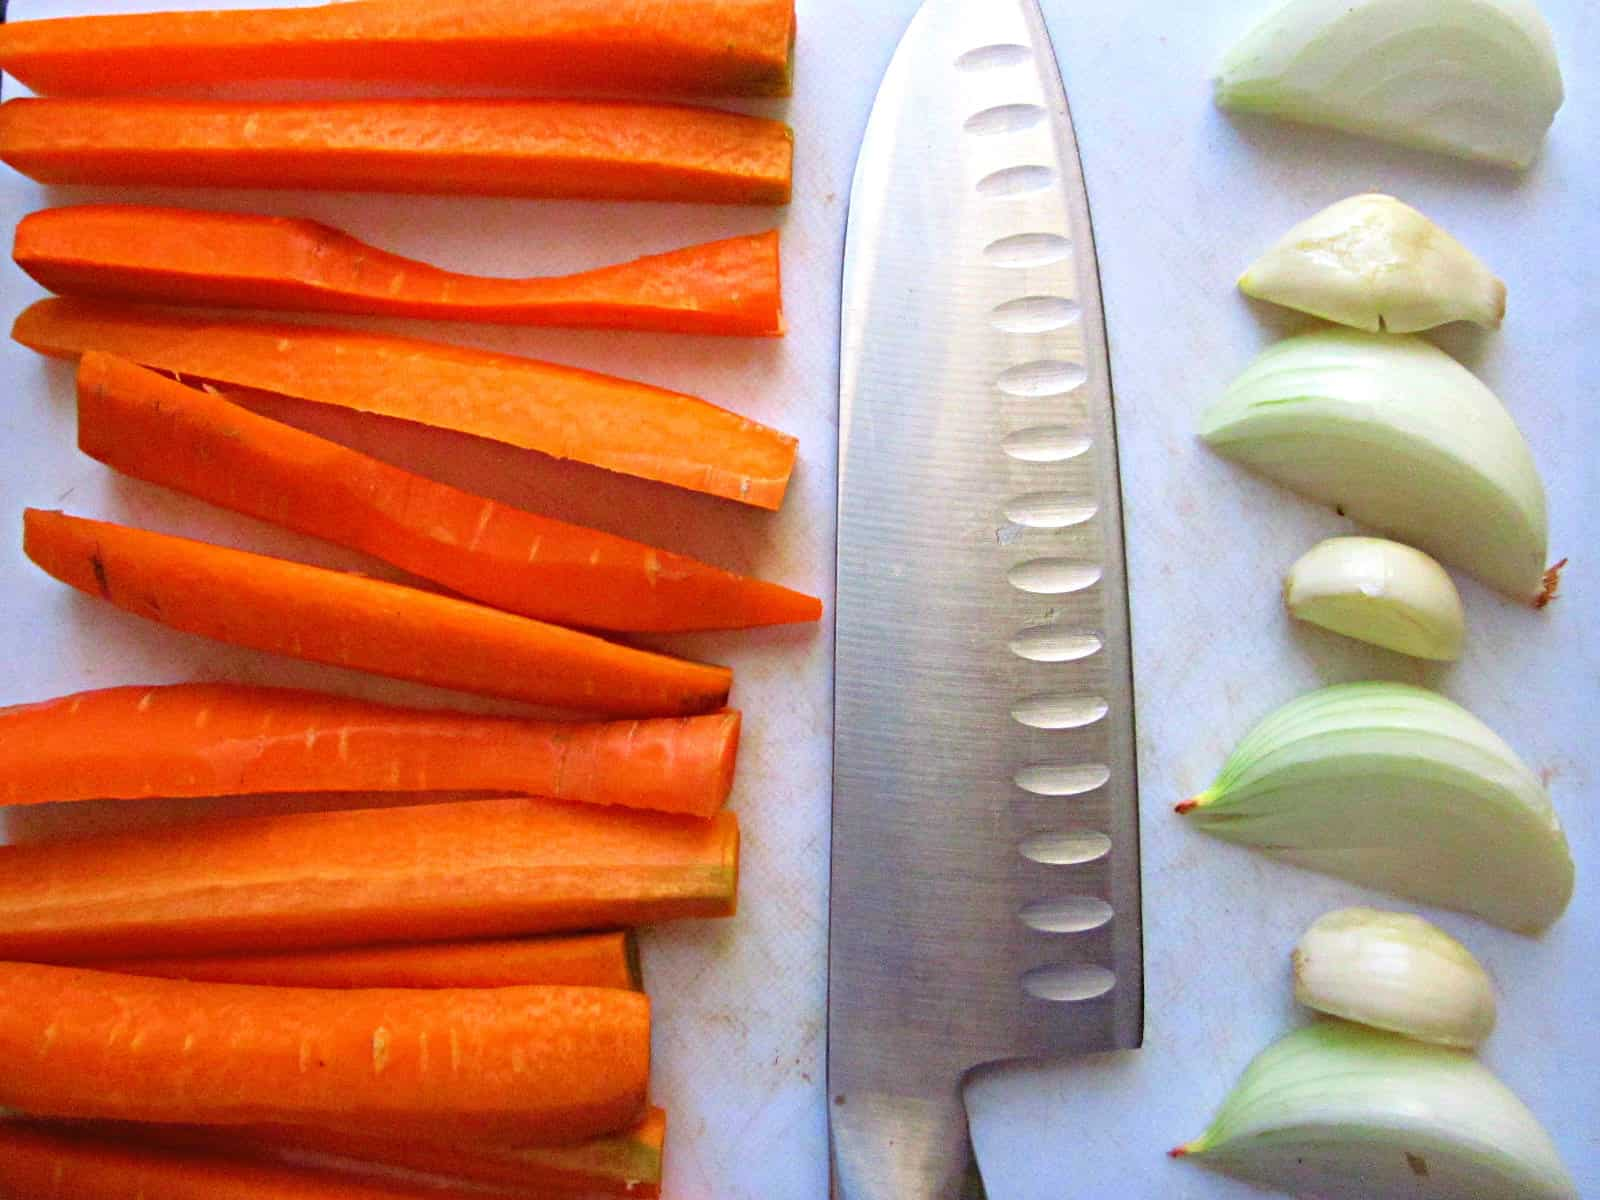 Whey-pickled carrots